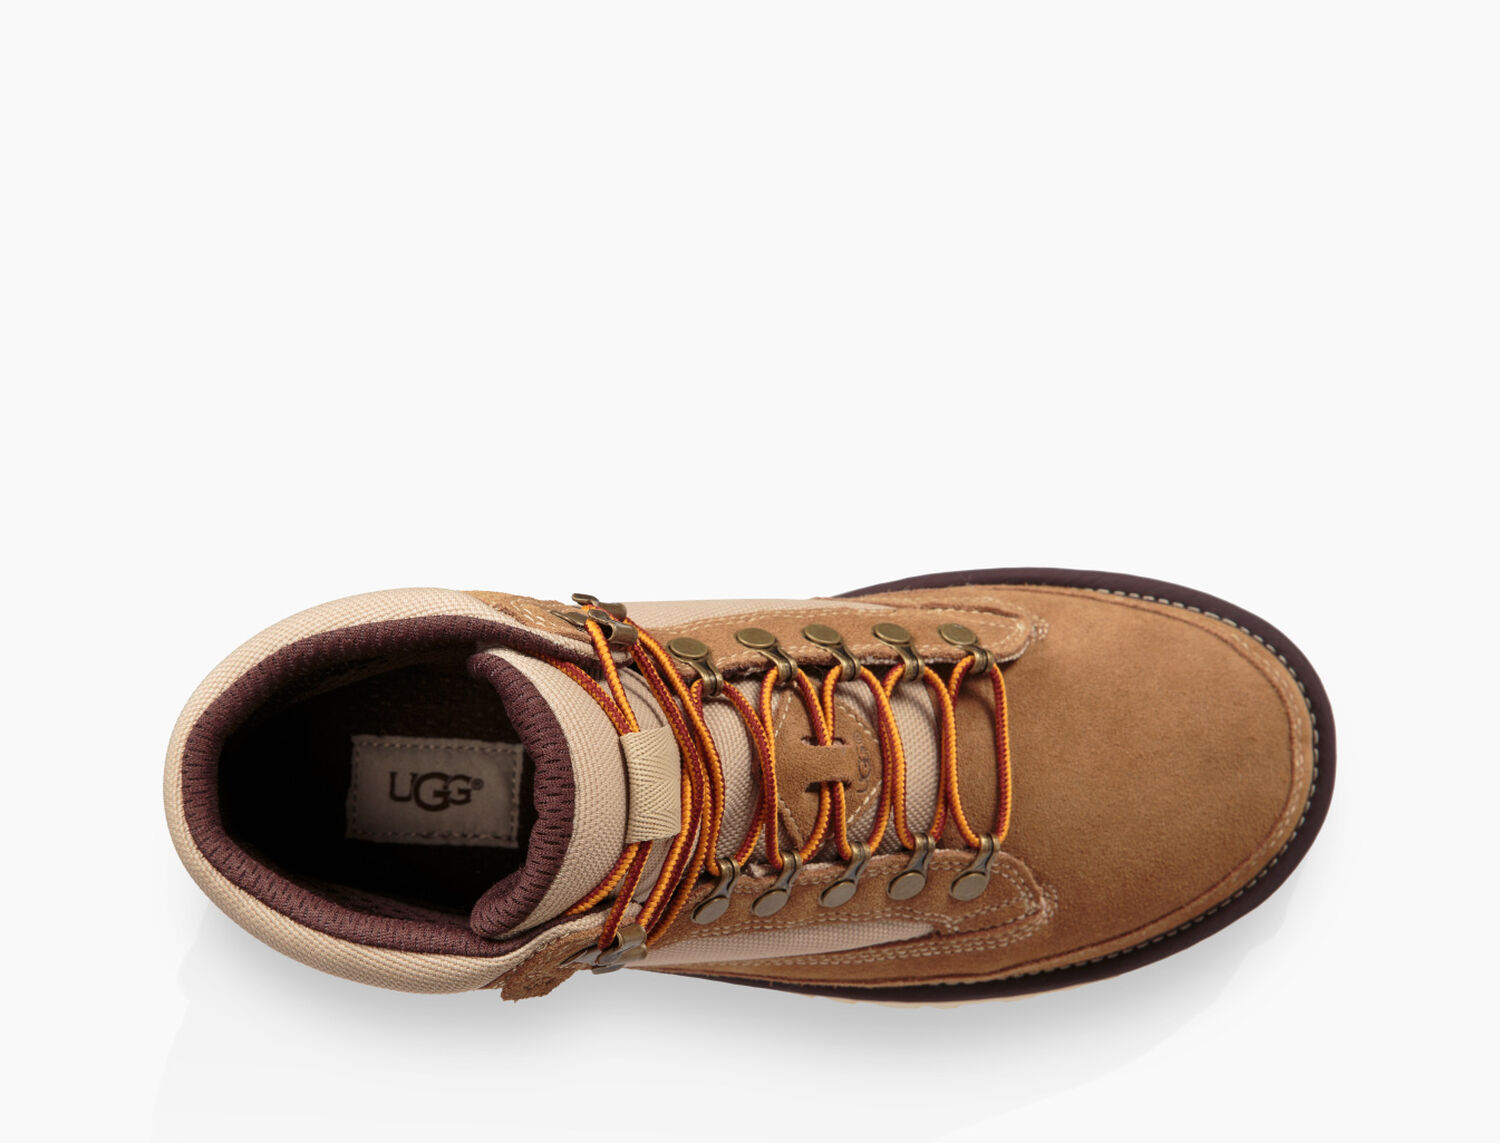 0d763910579 Men's Share this product Highland Hiker